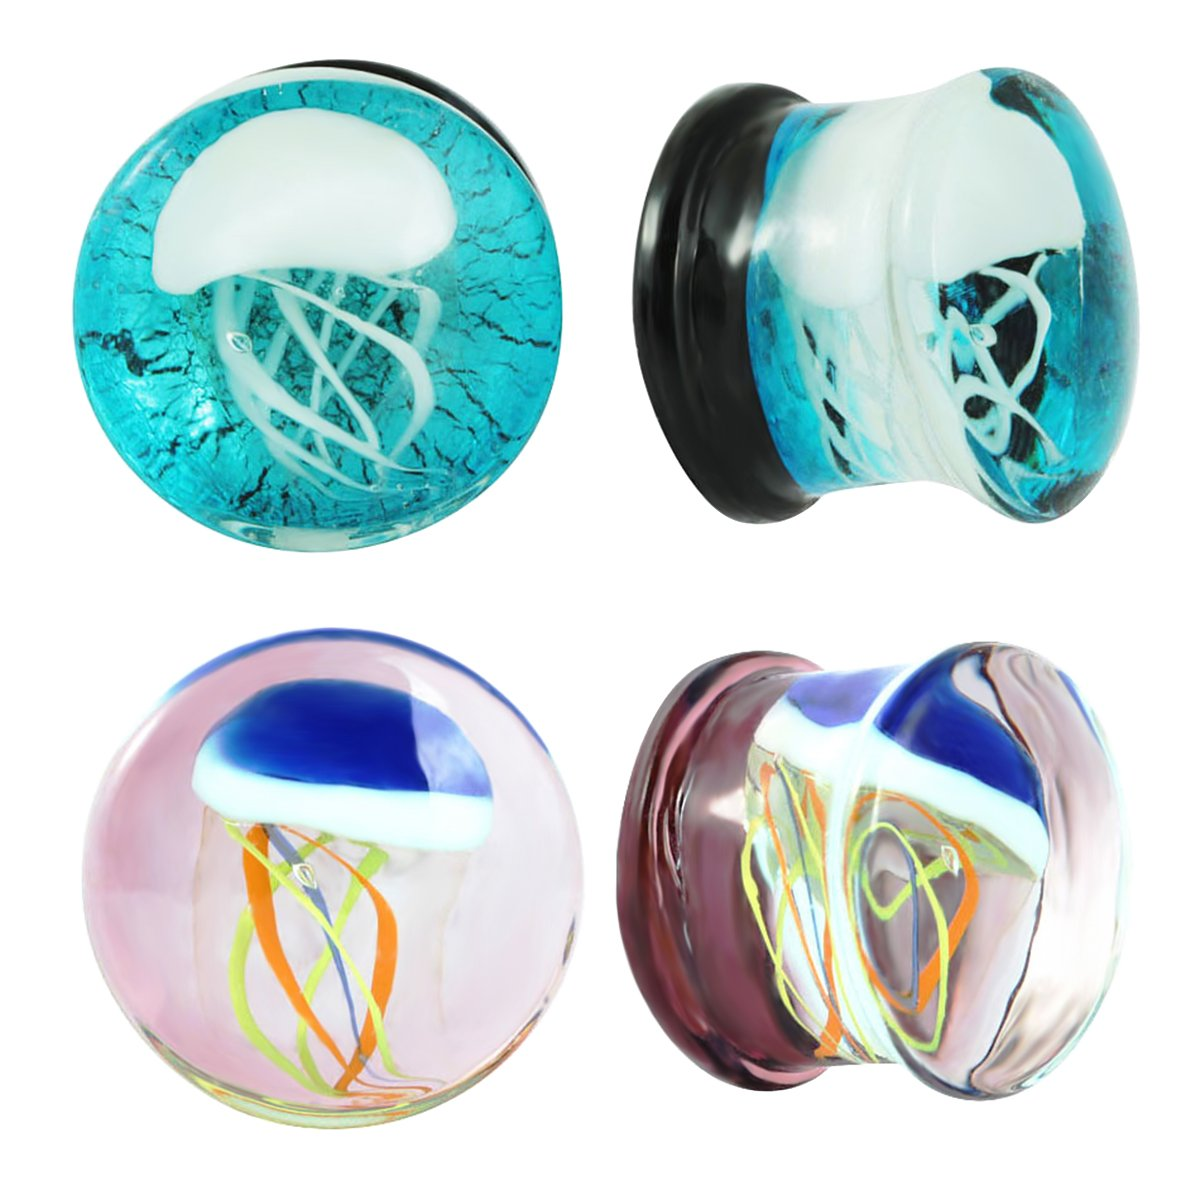 IPINK-New Glass Ocean Jellyfish Style Ear Stretcher Plug Gauges 2 Pairs